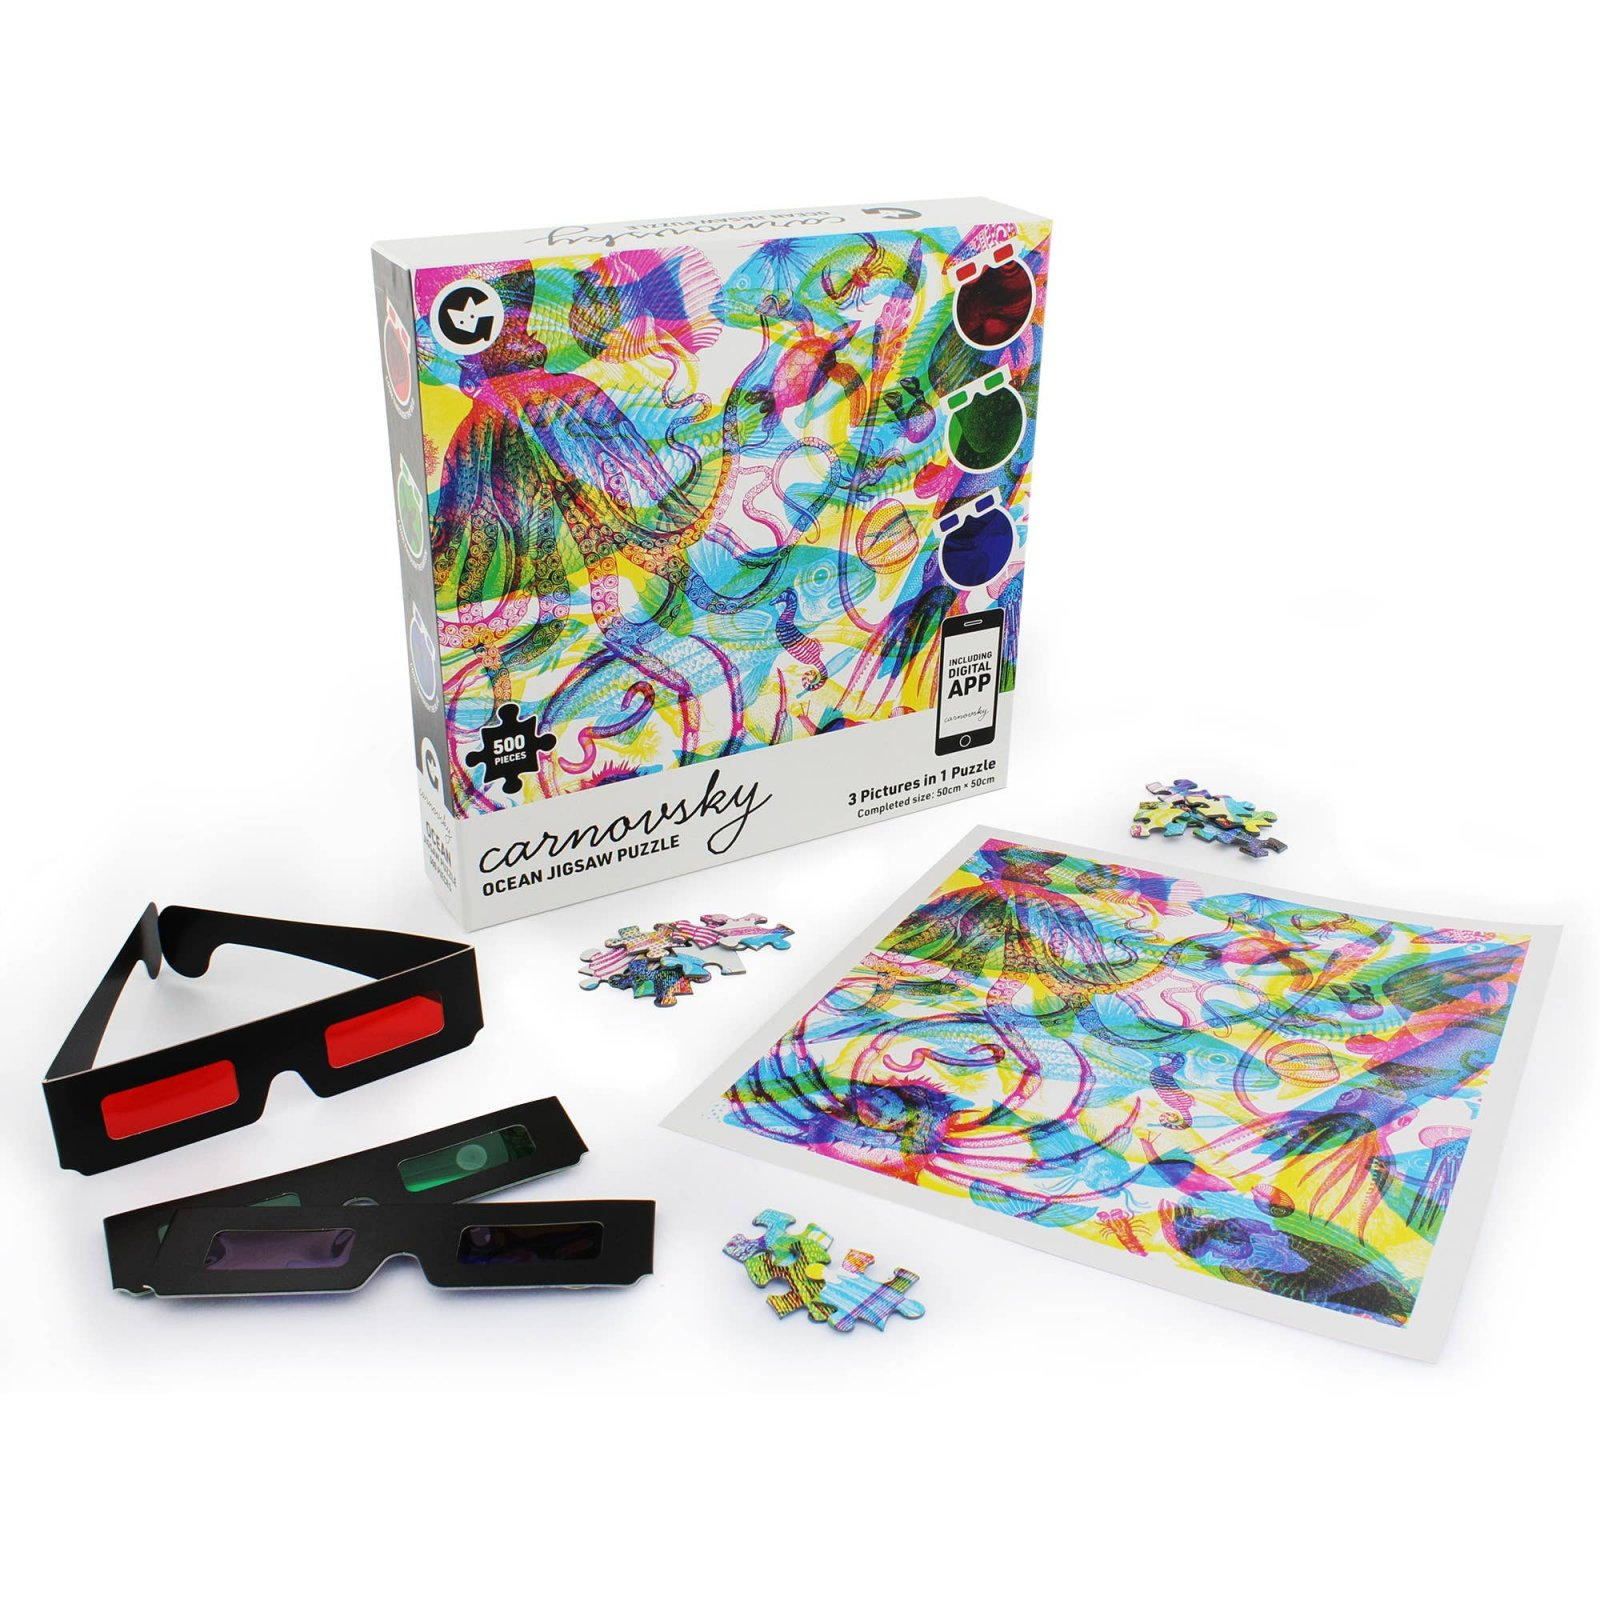 Carnovsky 500 Piece Ocean Puzzle - 3 Pictures in 1